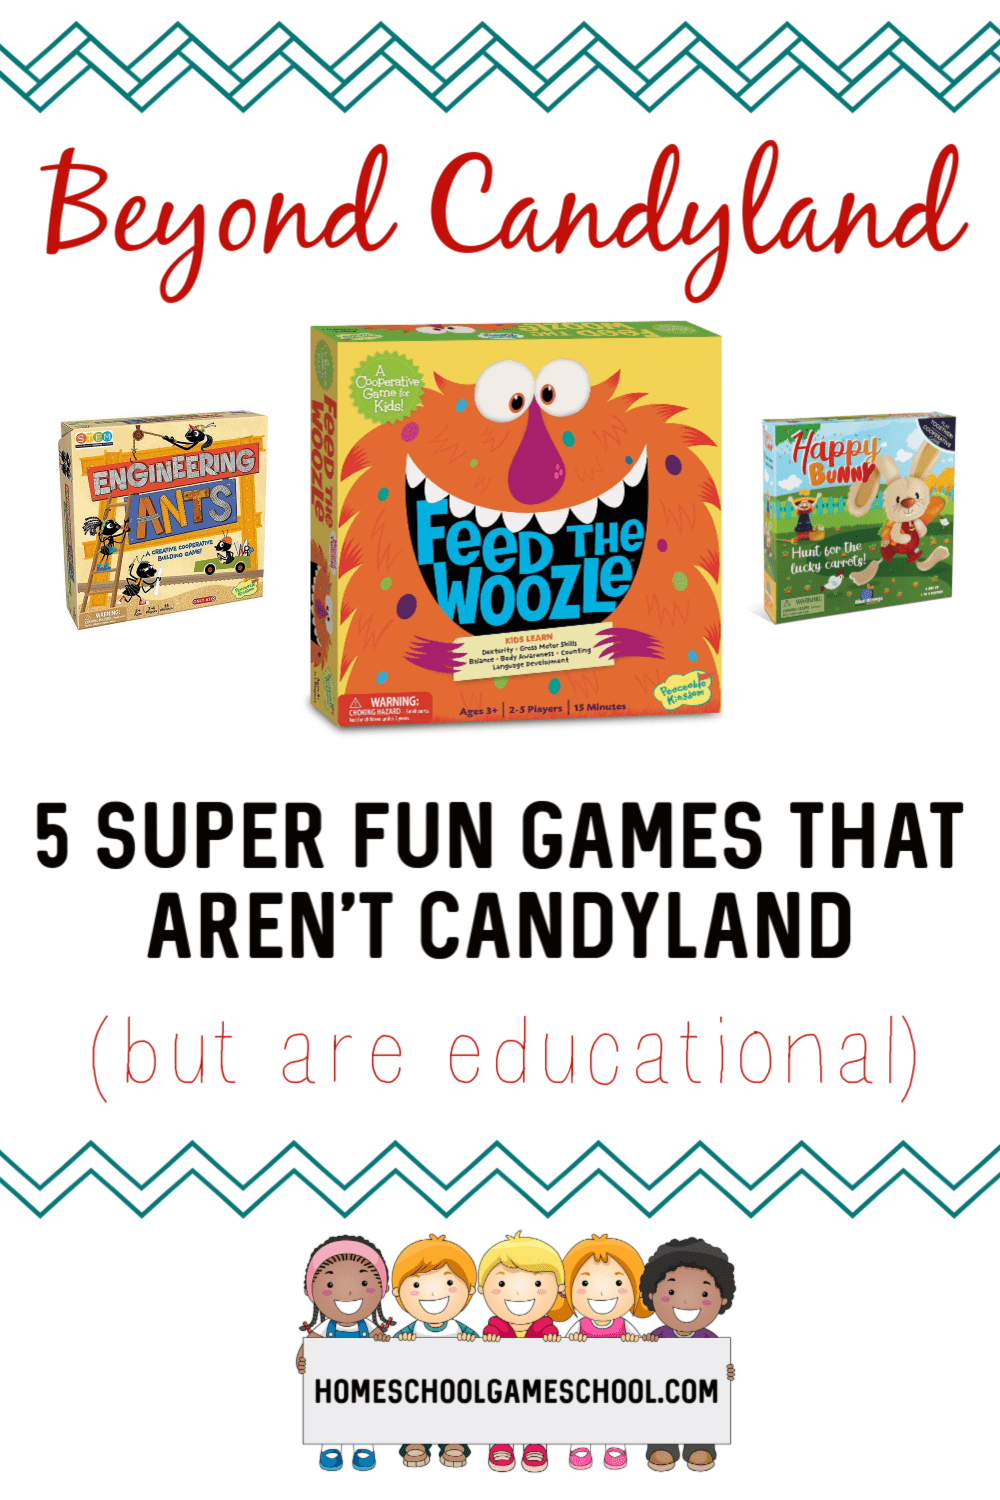 Beyond Candyland: Preschool Games Your Kids Will Love